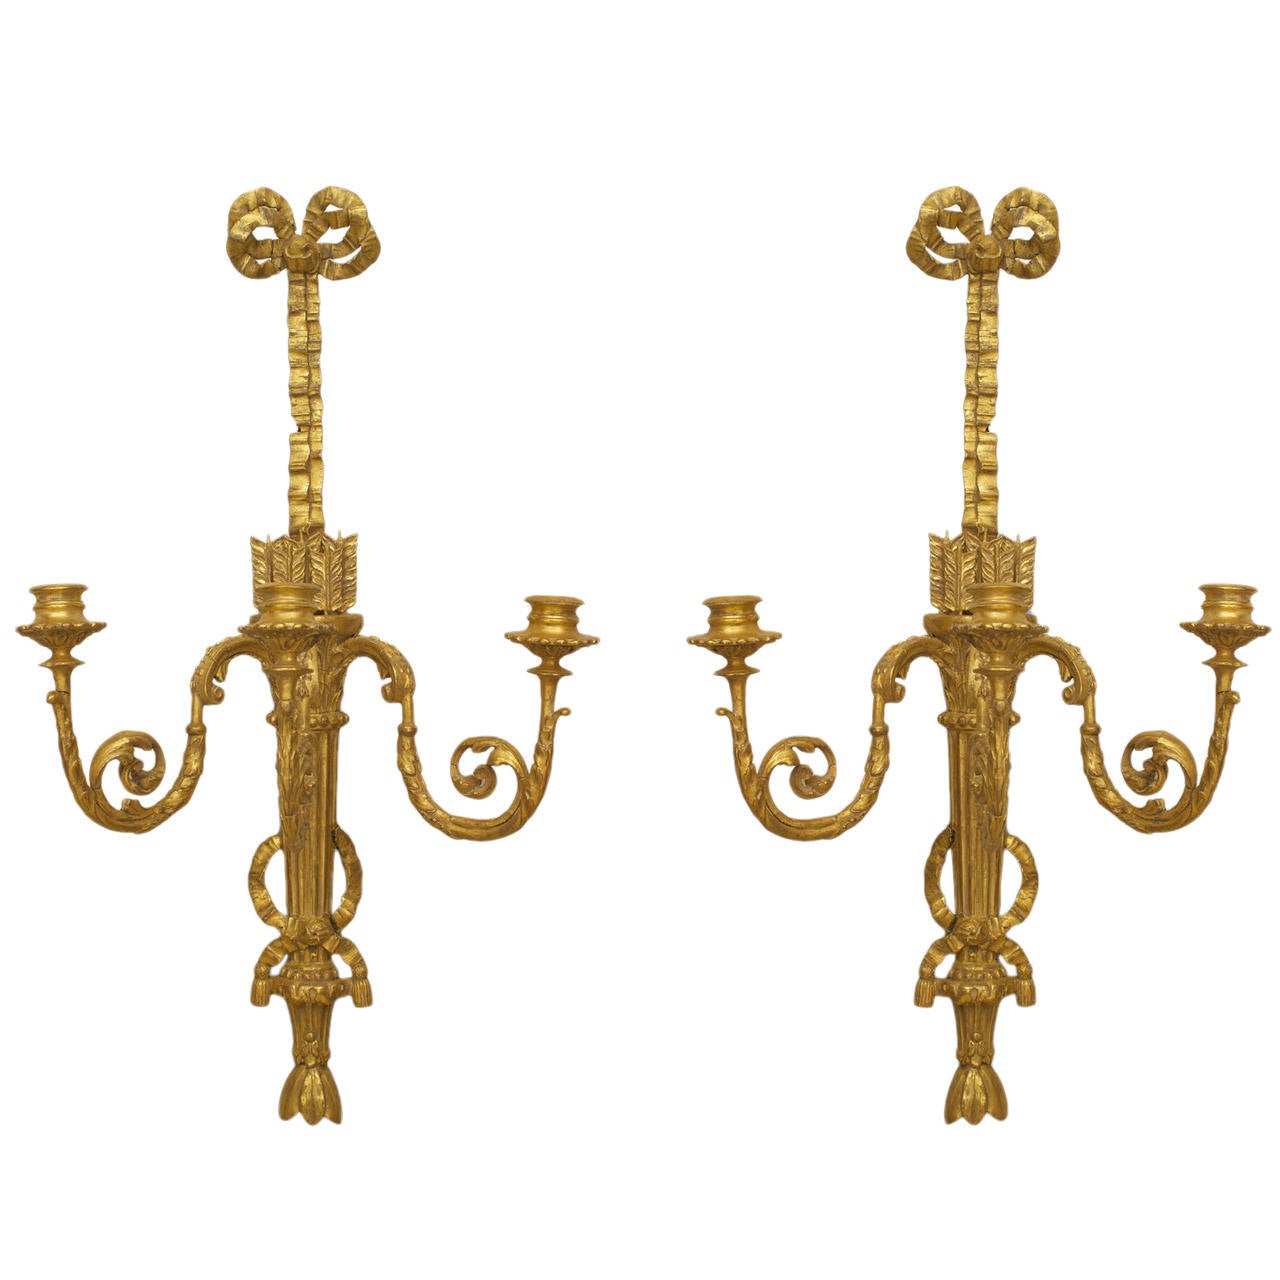 A Beautifully Carved Pair of Louis XVI Gilt Wood Wall Sconces